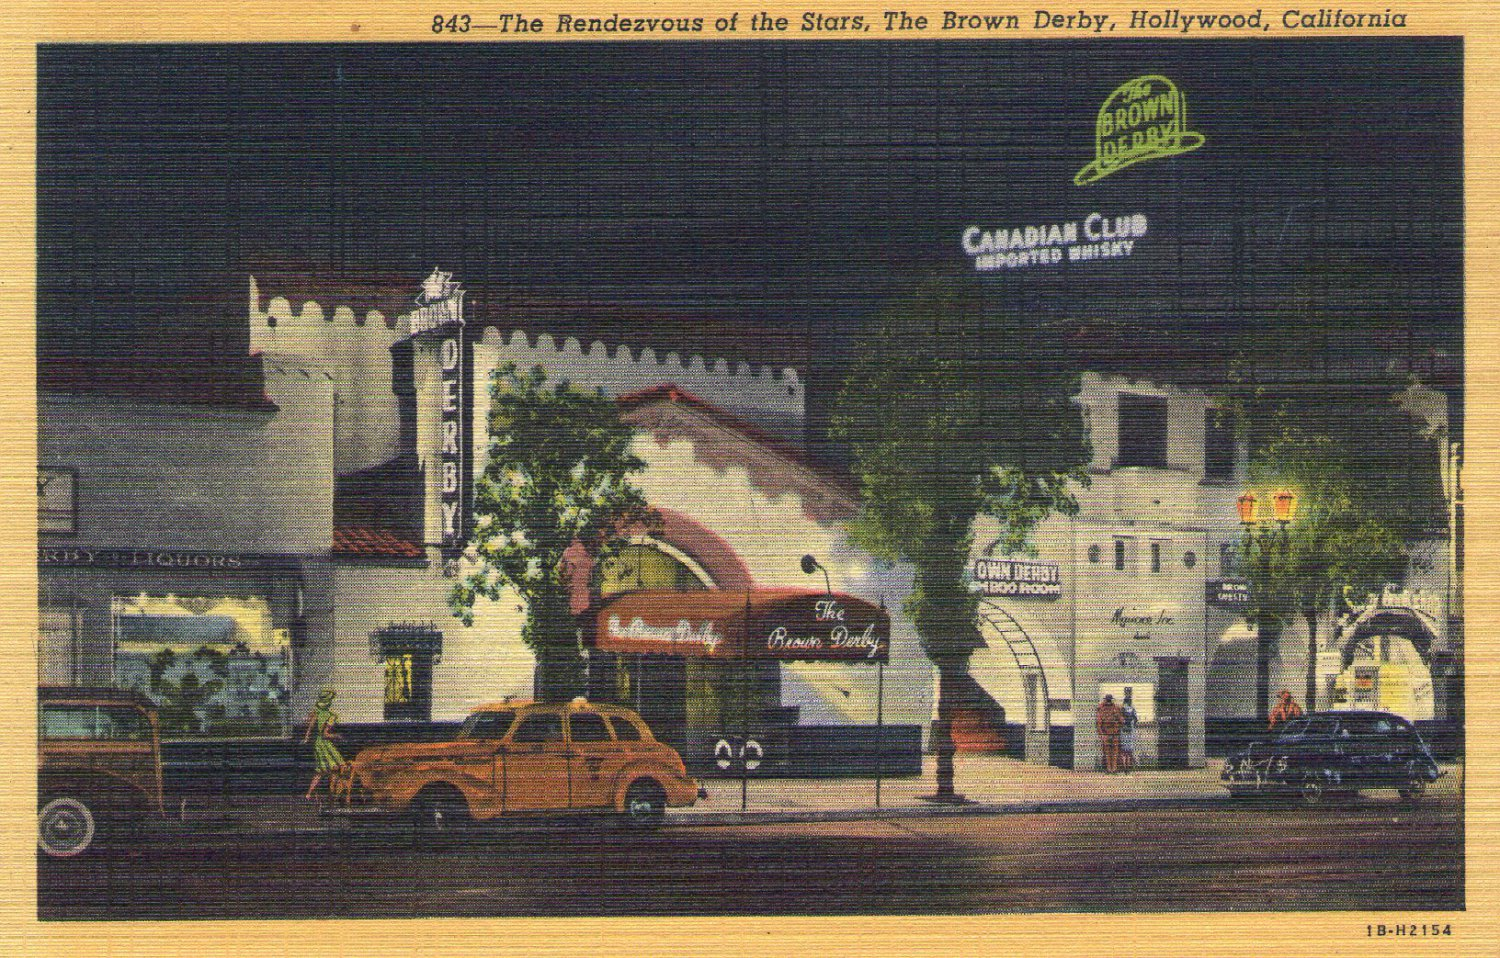 """Hollywood- C. T. Art """"The Brown Derby in Hollywood, California"""" Linen Postcard"""